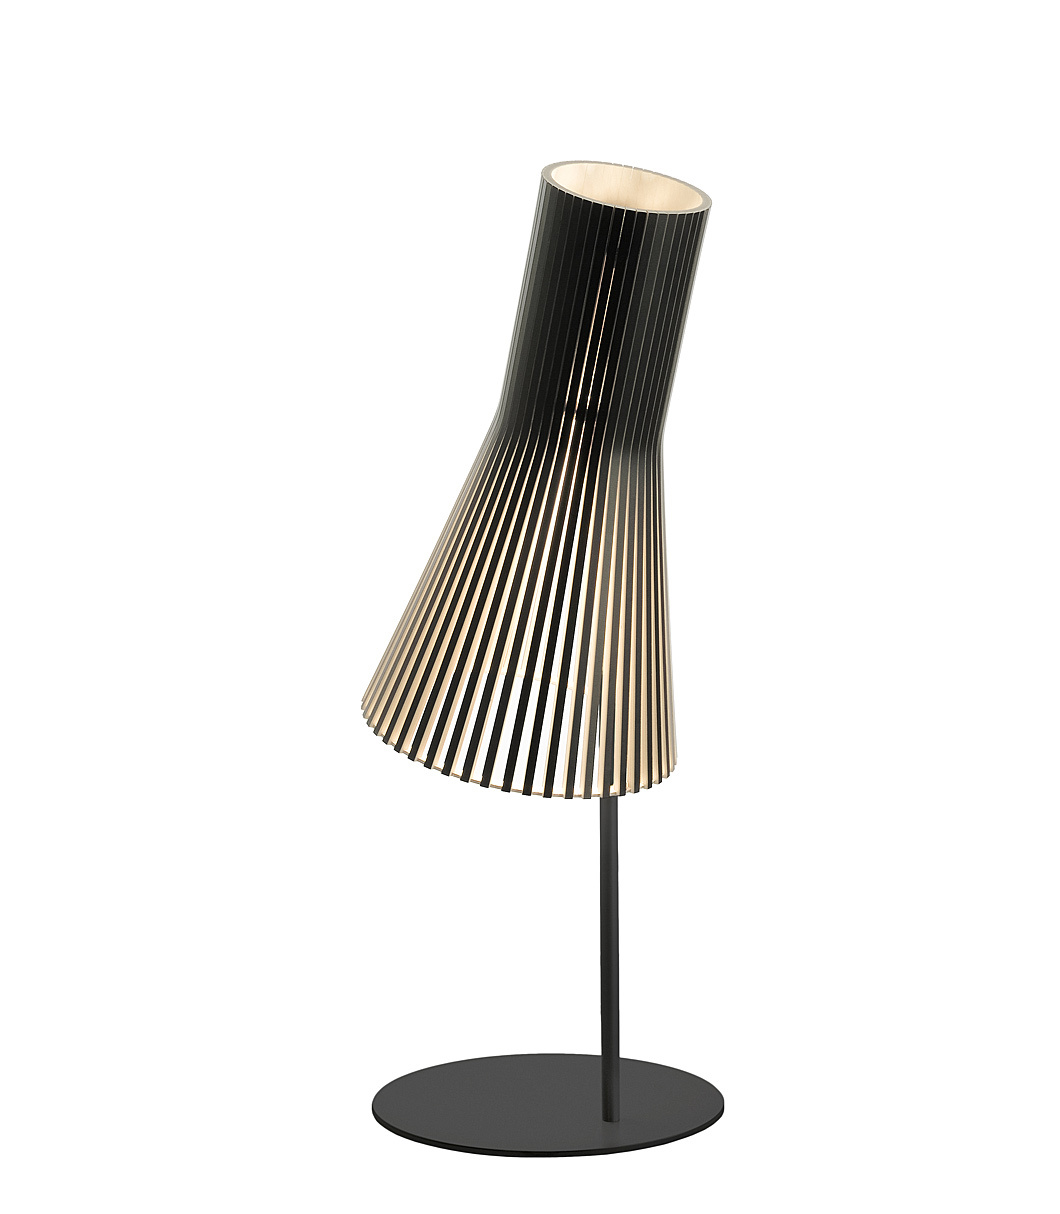 Secto 4220 table lamp color black